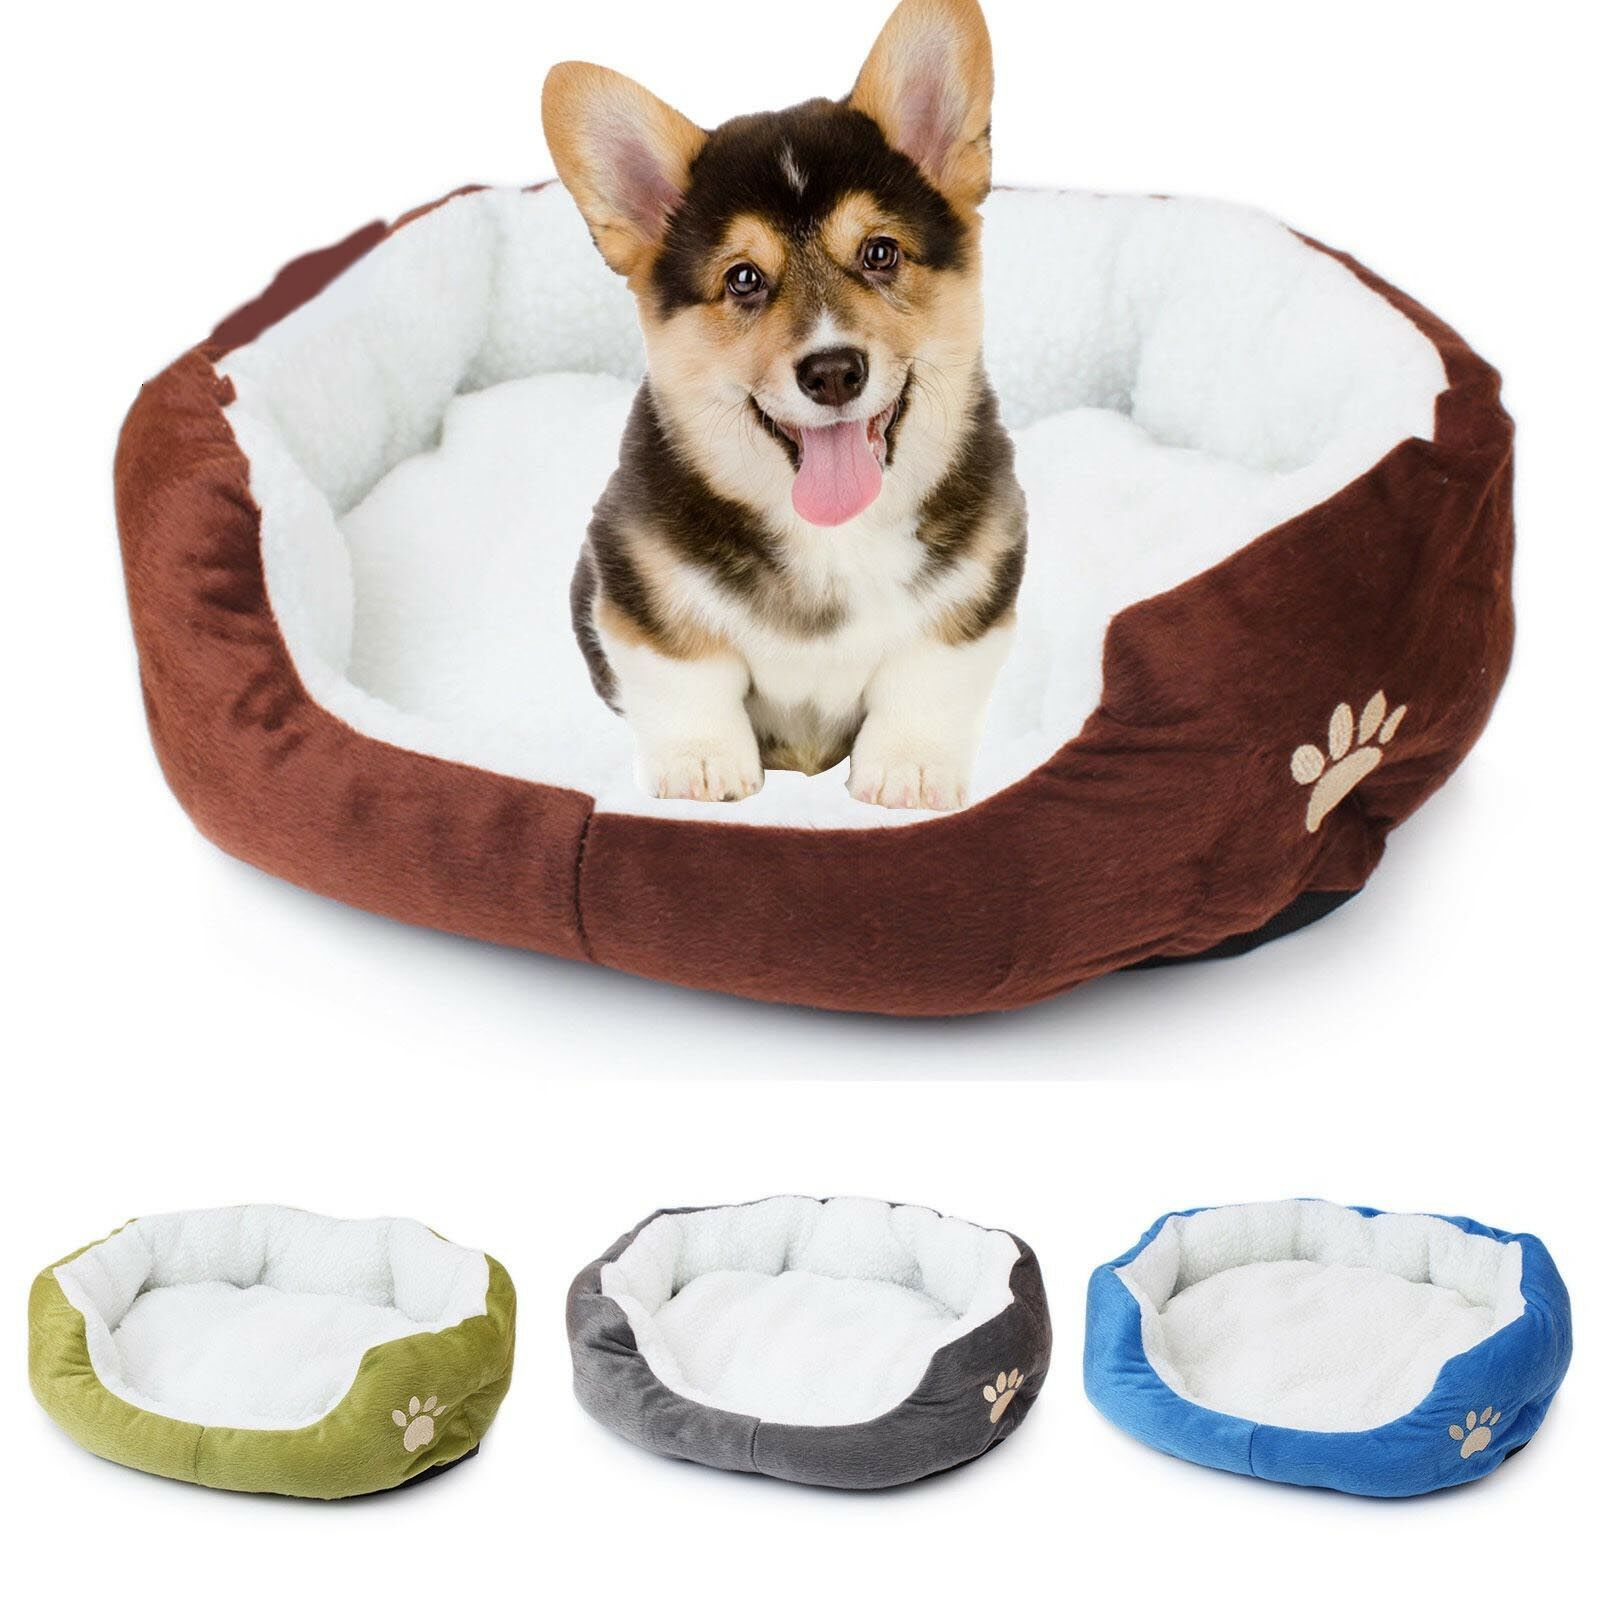 Indoor Pet Dog Cat Bed Puppy Cushion House Soft Warm Kennel Mat Blanket Washable 2